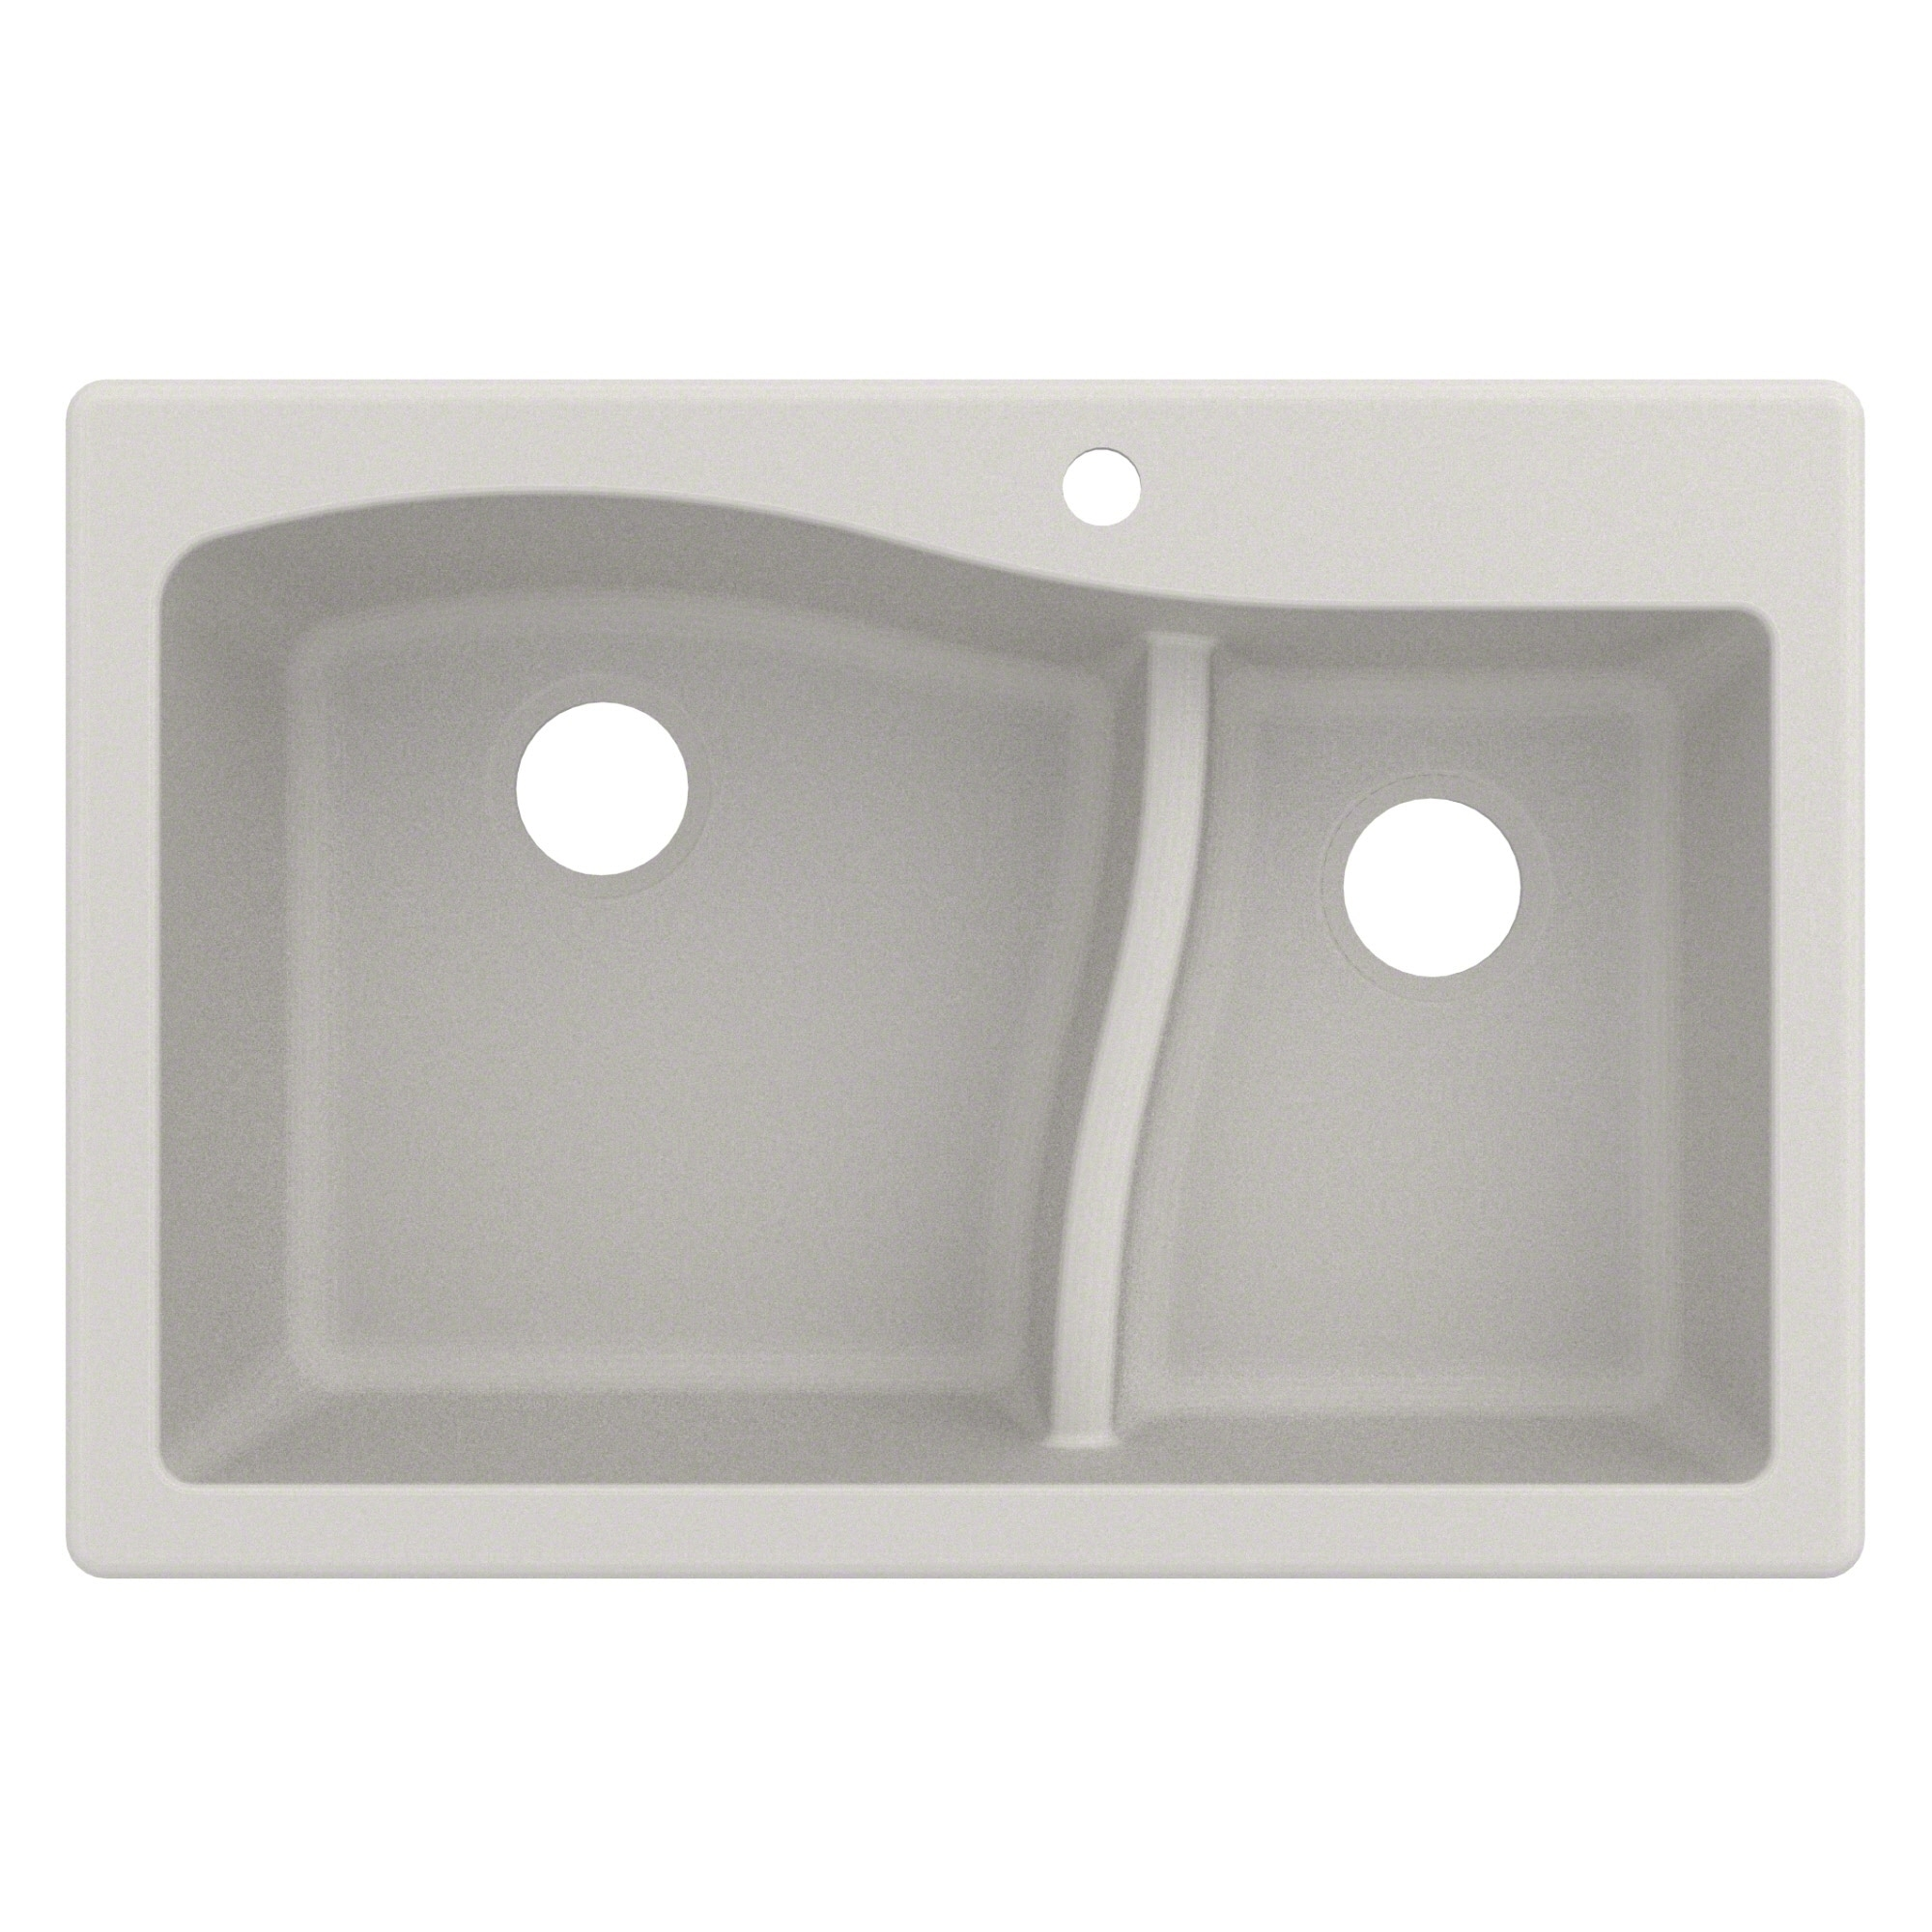 Buy White Kitchen Sinks Online at Overstock.com | Our Best Sinks Deals